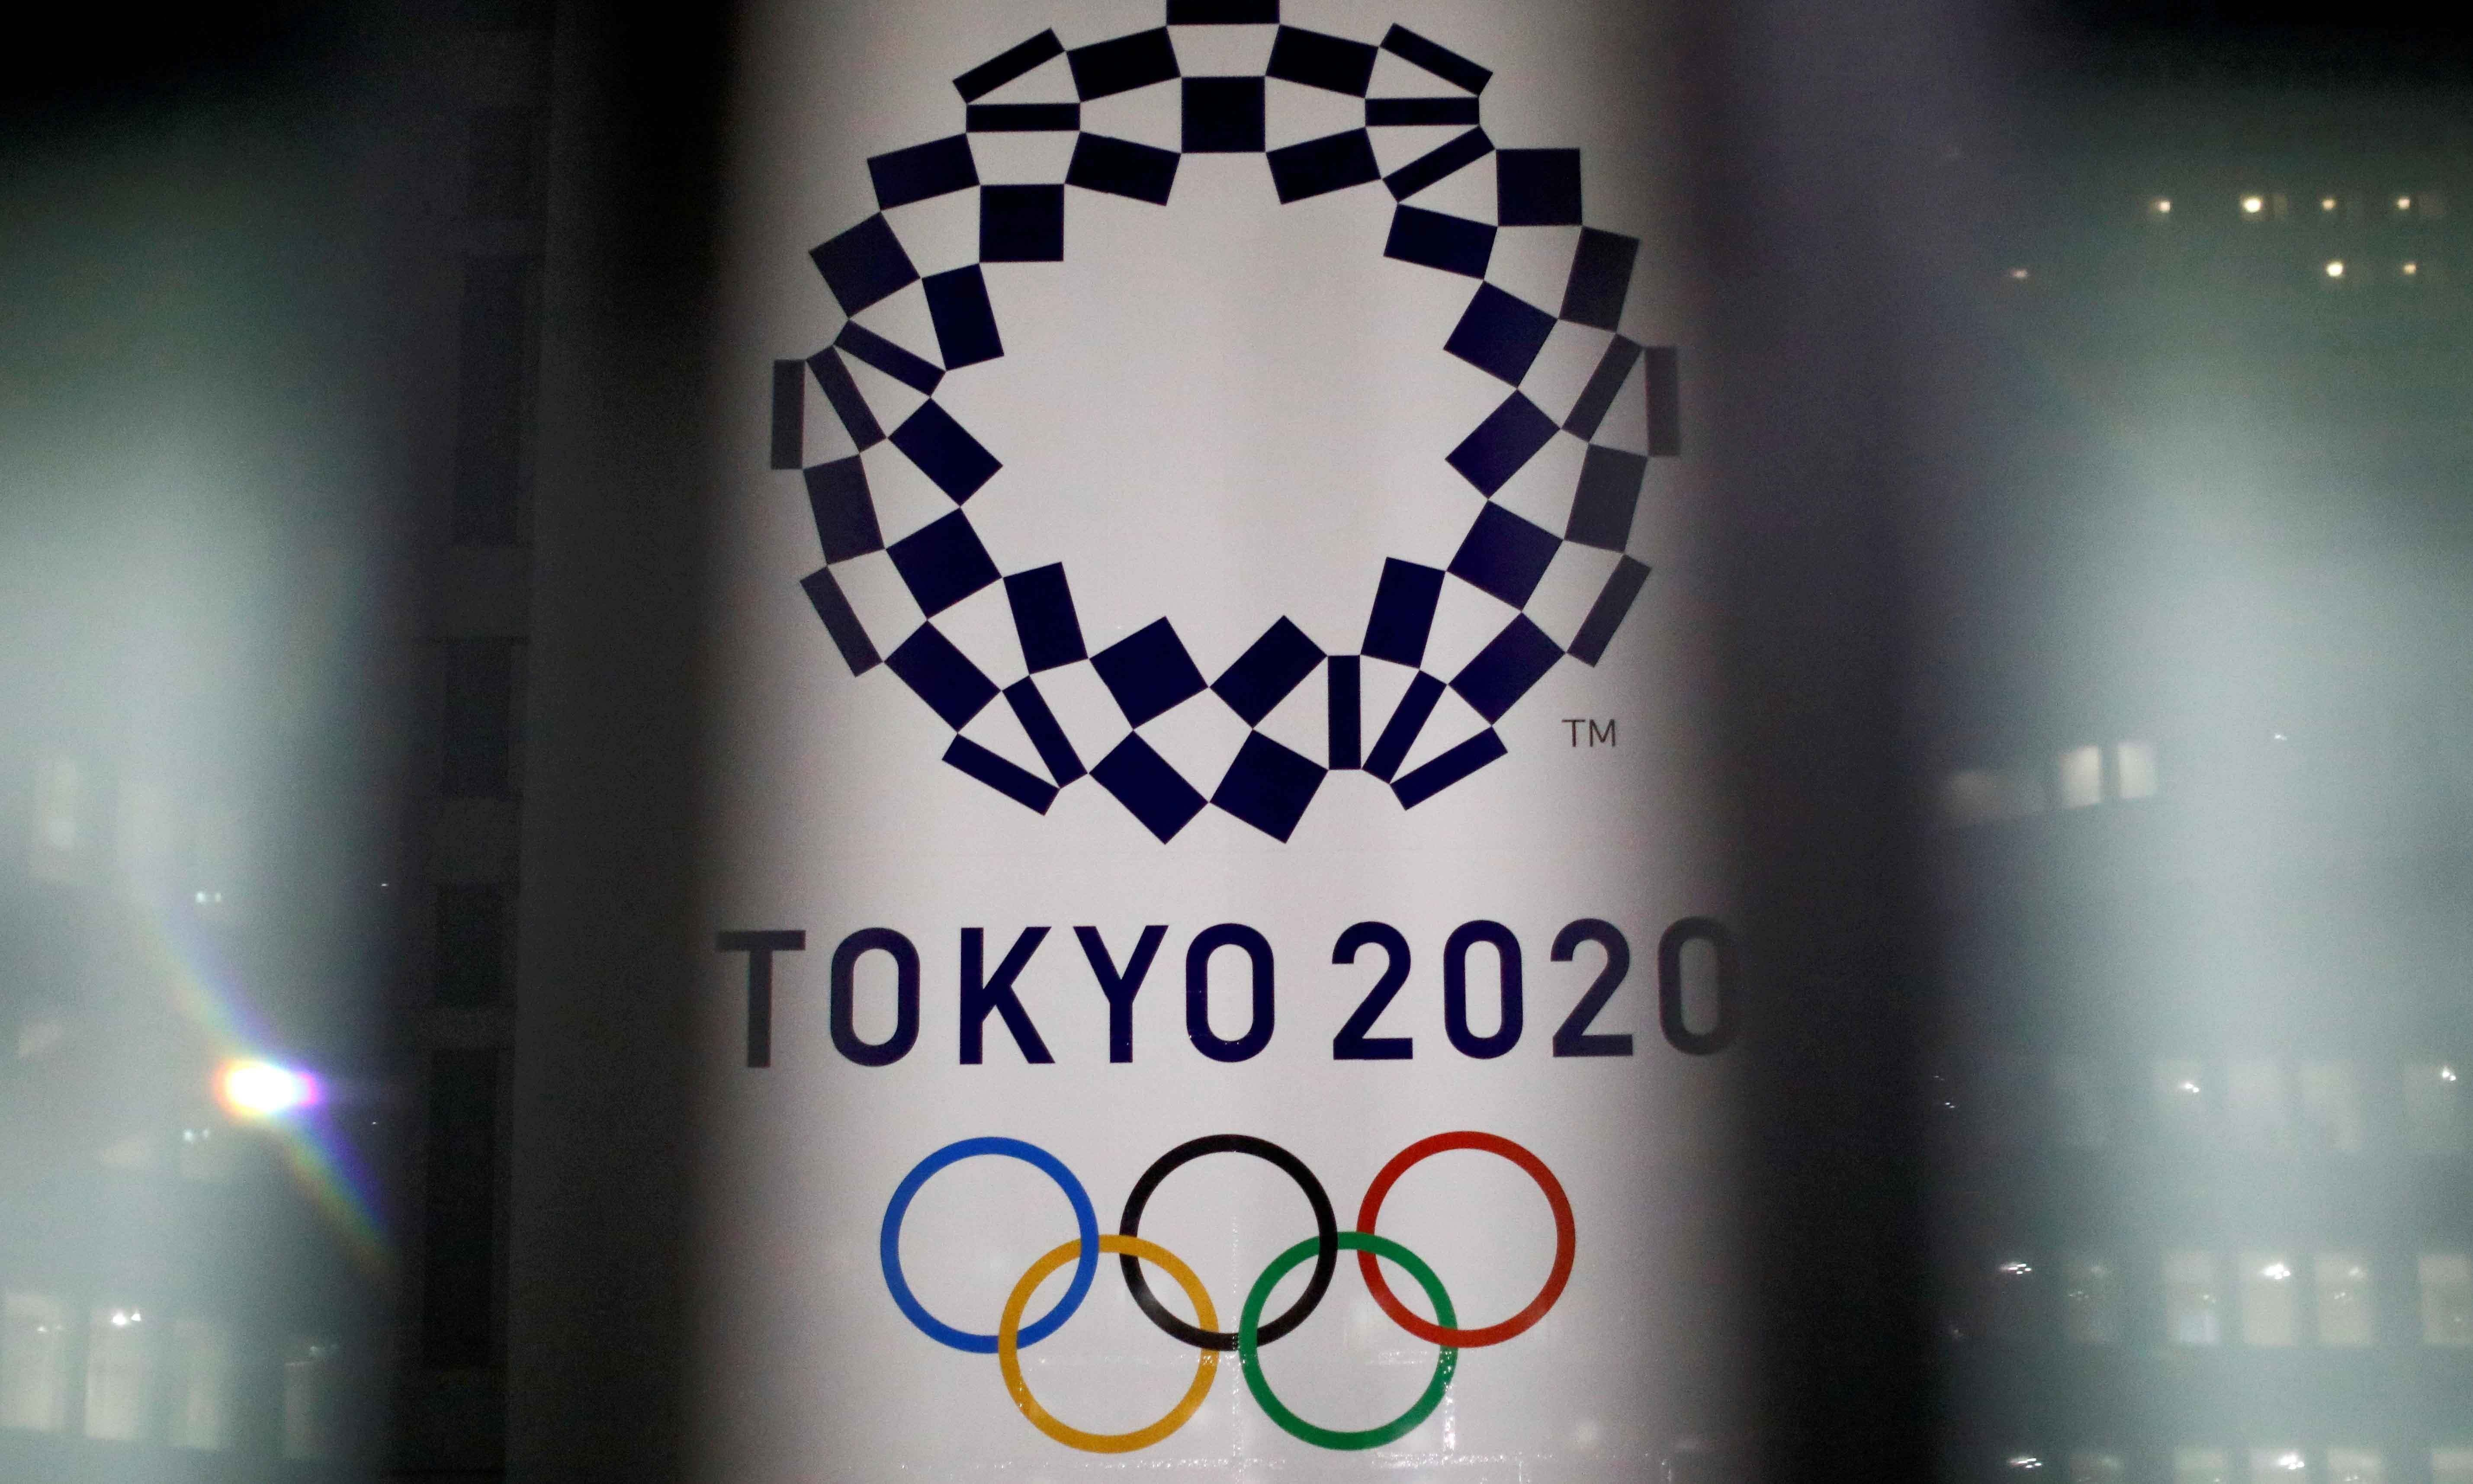 The logo of the Tokyo Olympic Games, at the Tokyo Metropolitan Government Office building in Tokyo. — Reuters/File